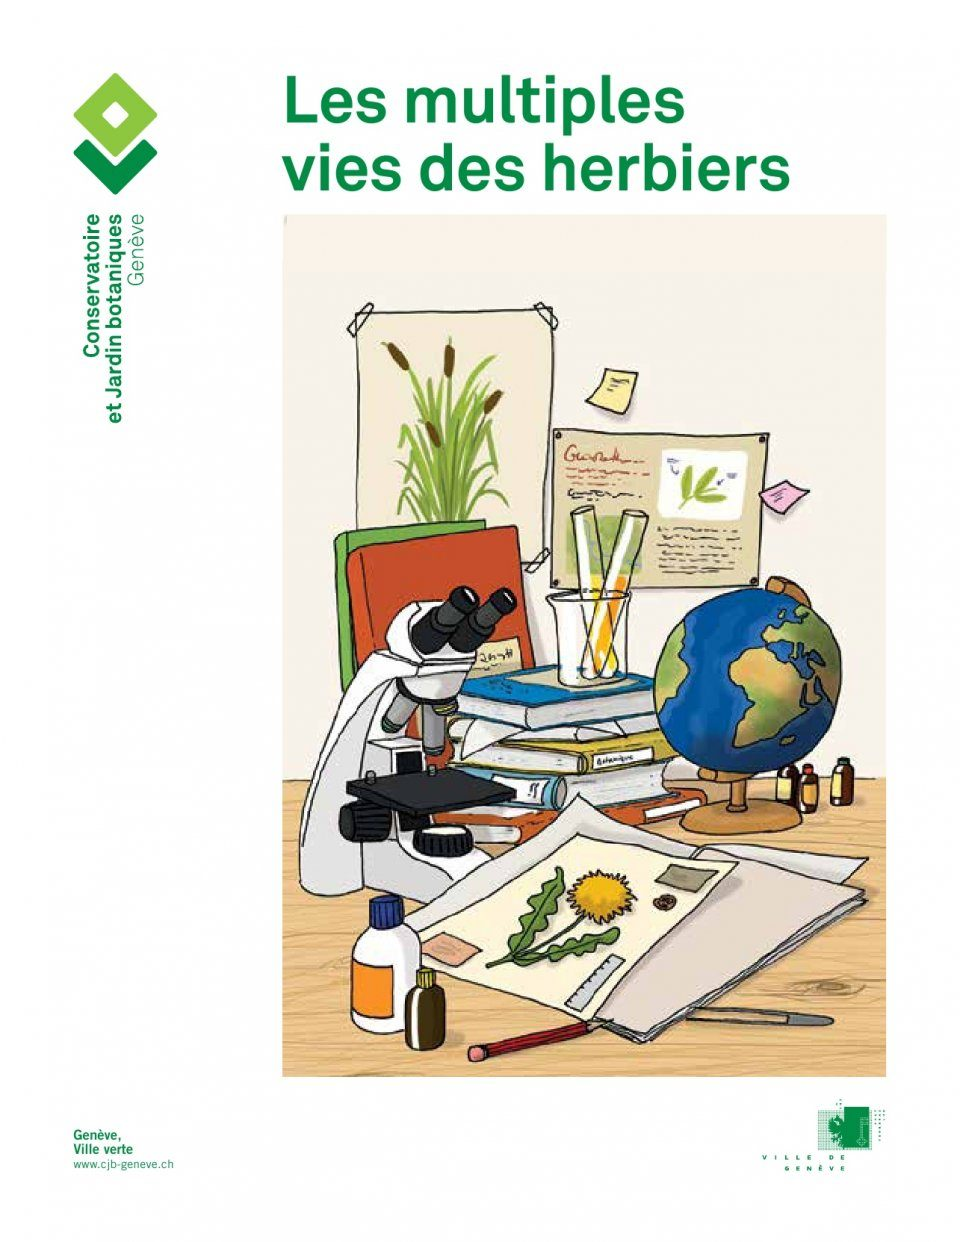 Les Multiples Vies des Herbiers [The Many Lives of Herbaria]